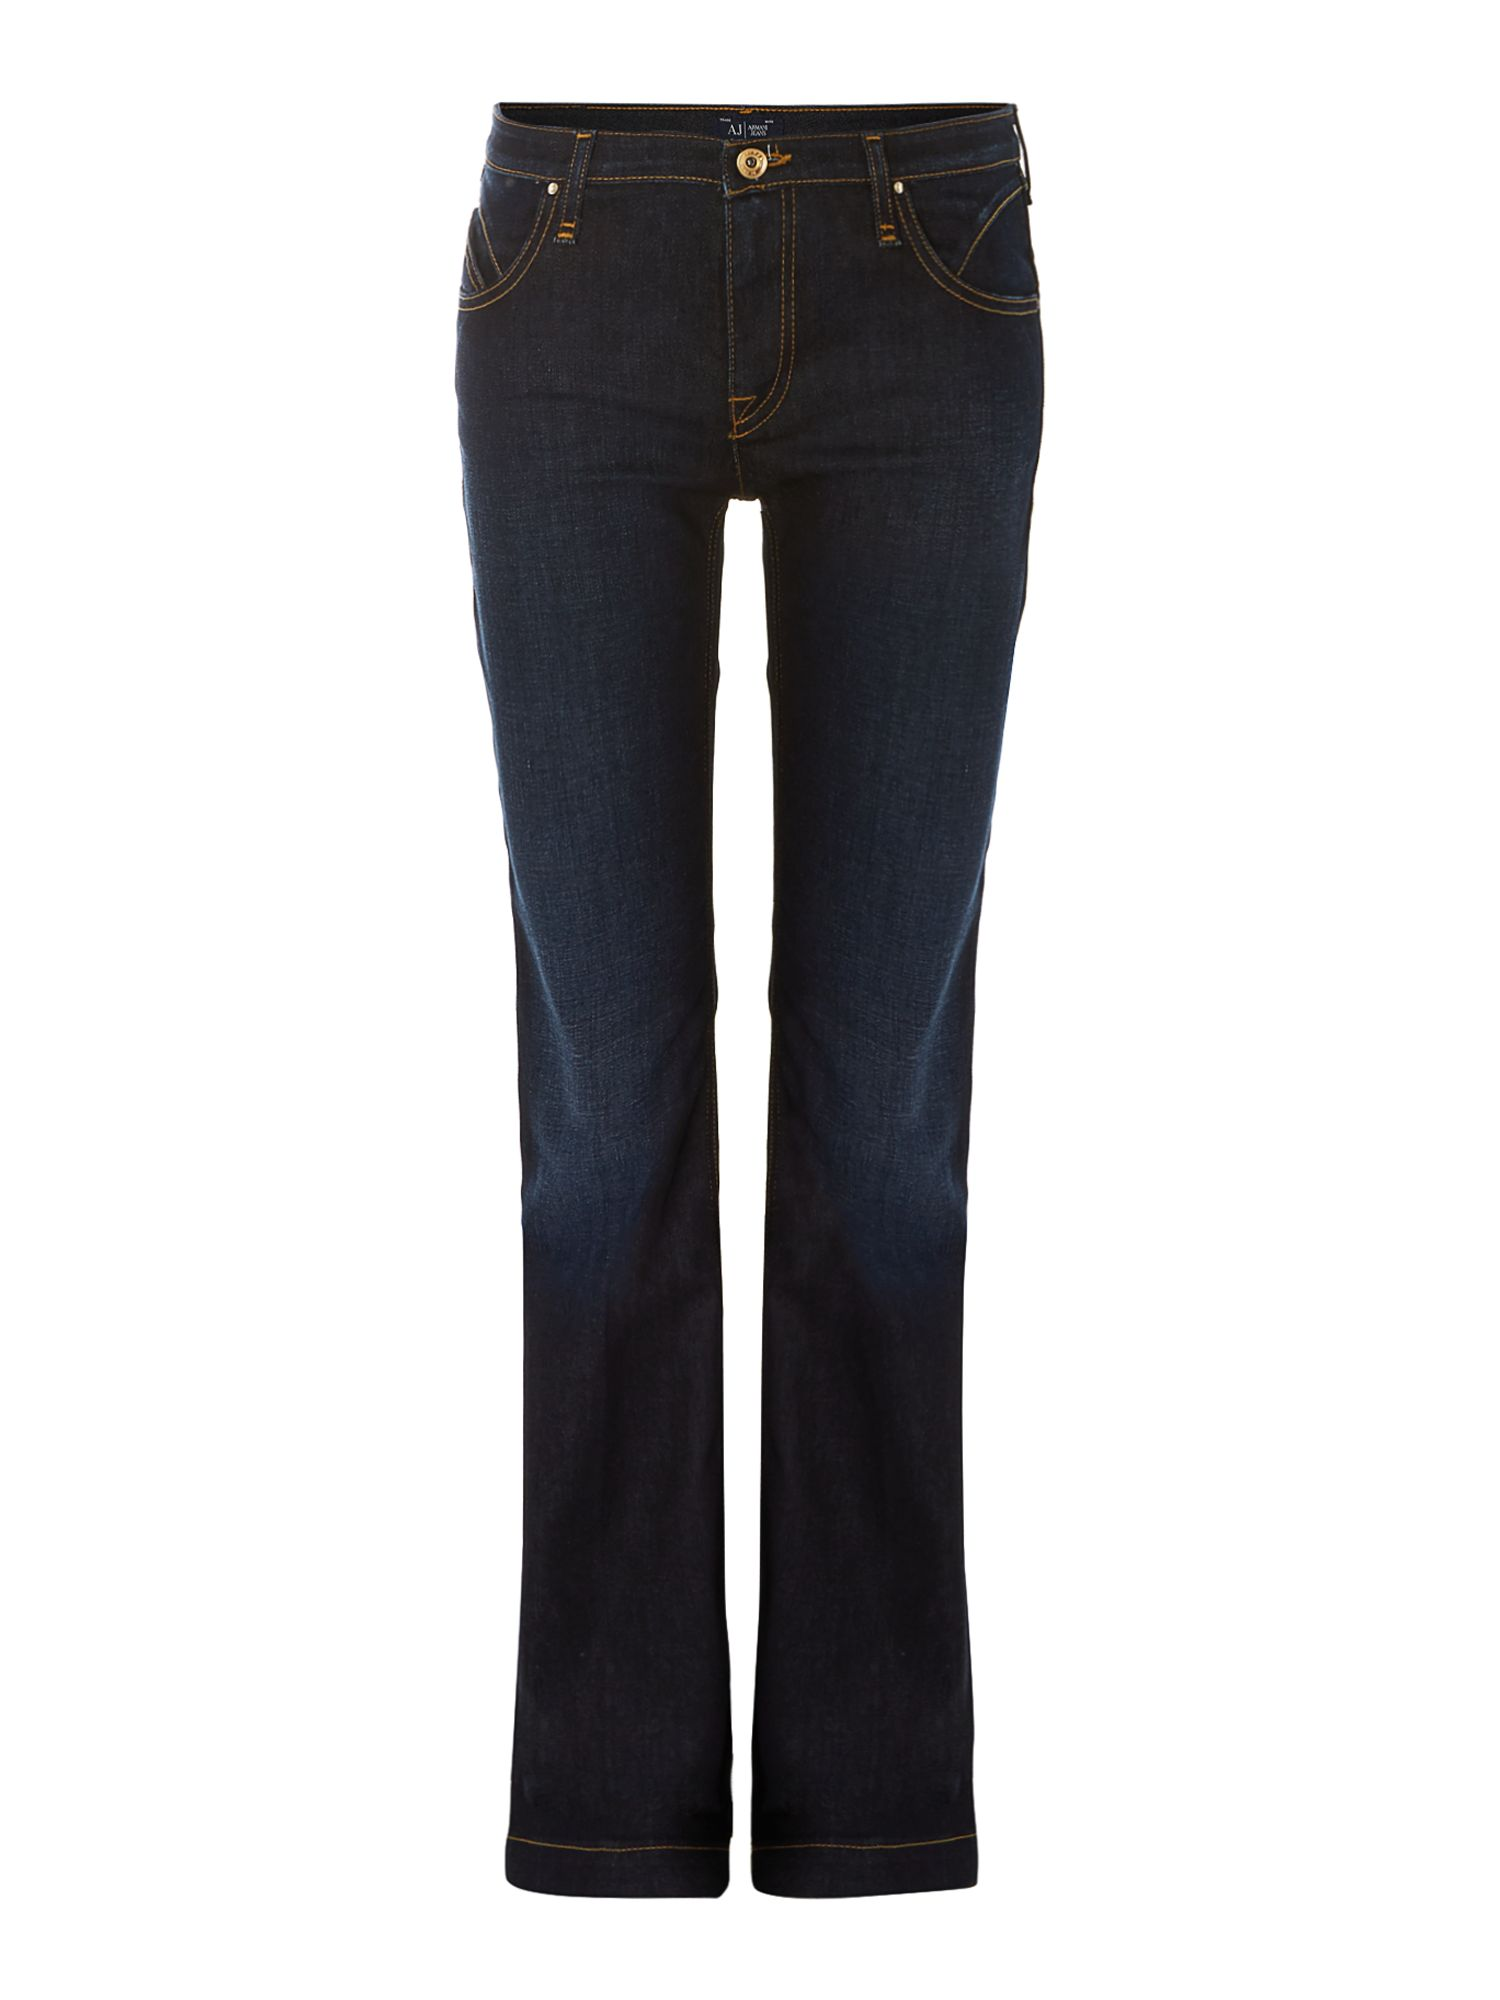 J07 slim fit flare jeans